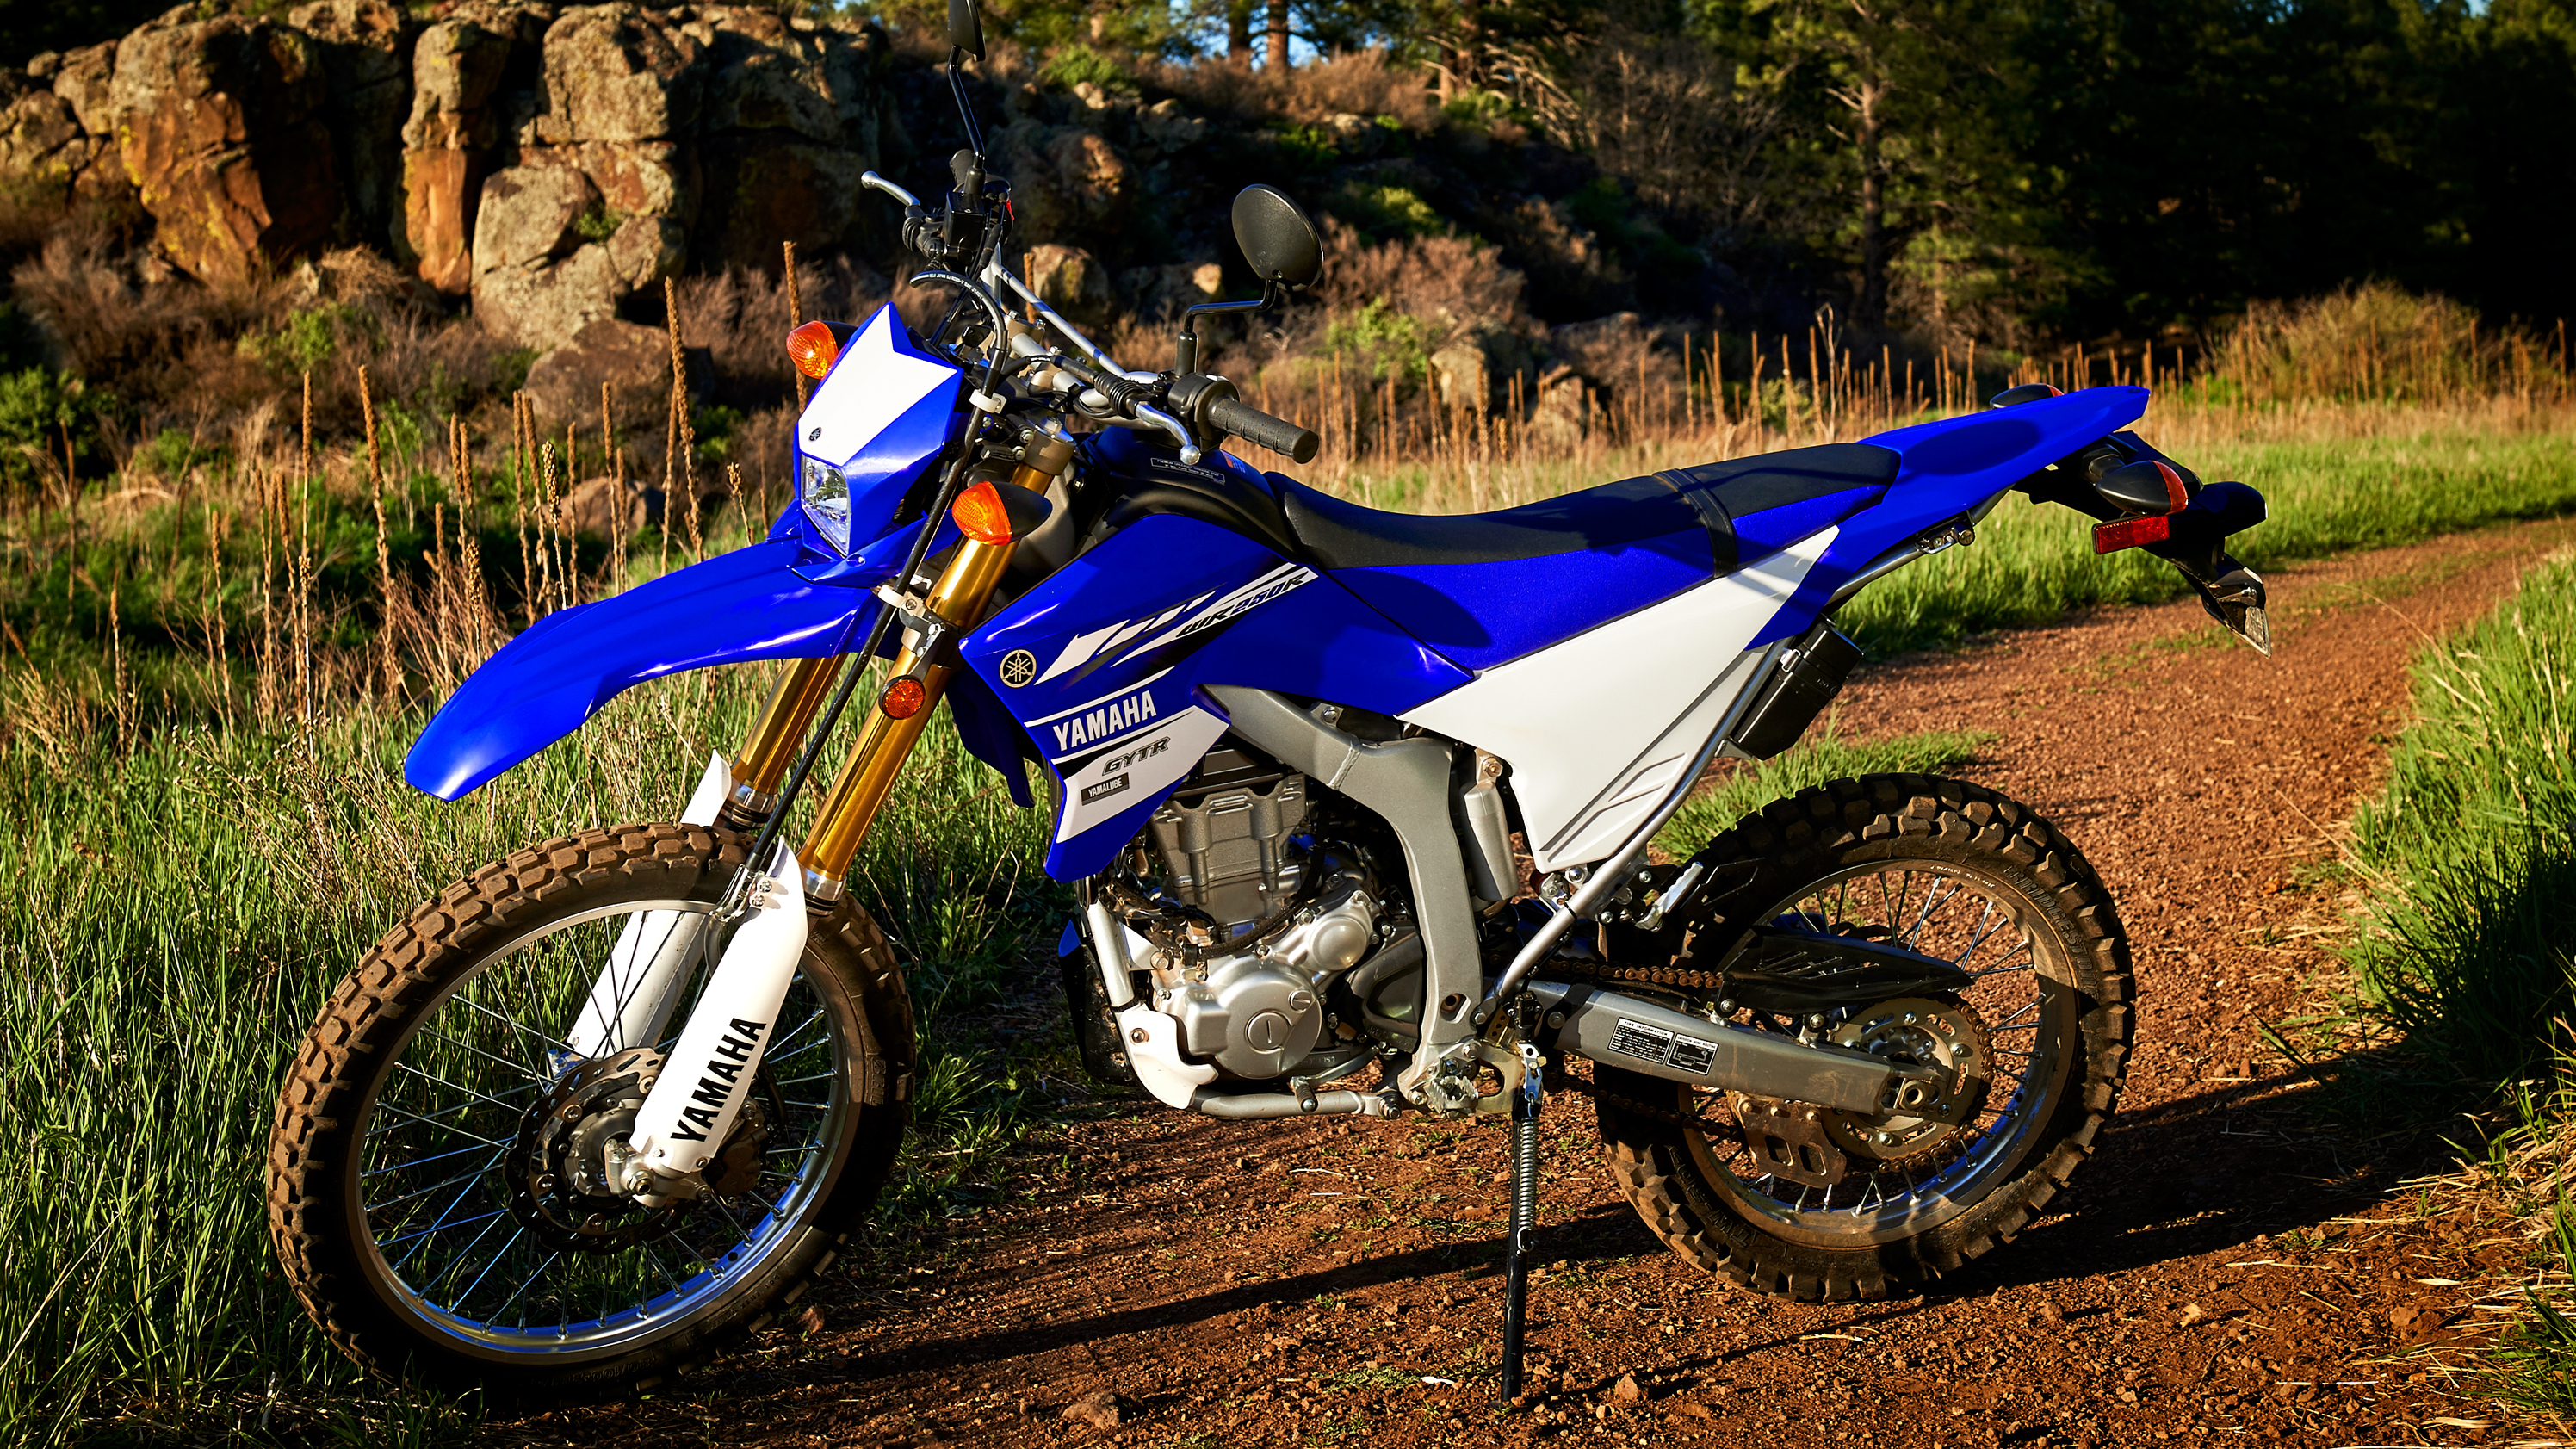 Yamaha Wr250r Fuse Box | Repair Manual